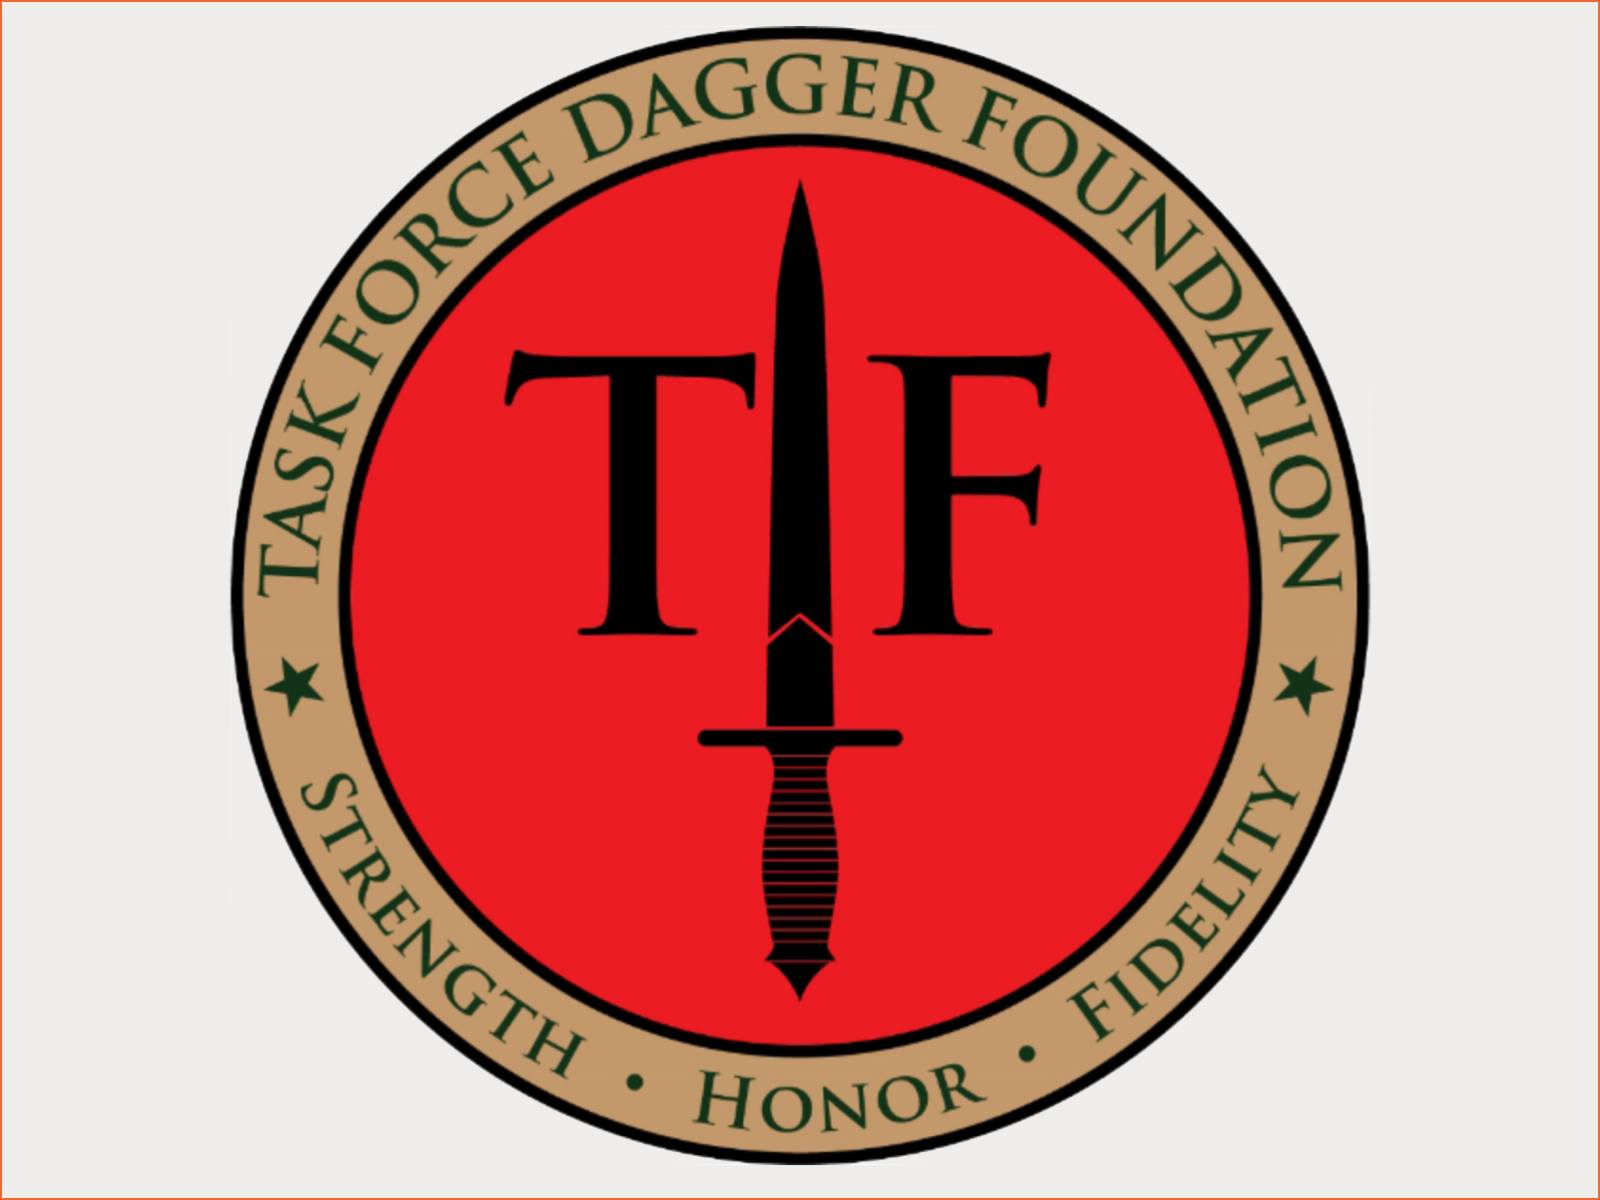 Task Force Dagger Foundation